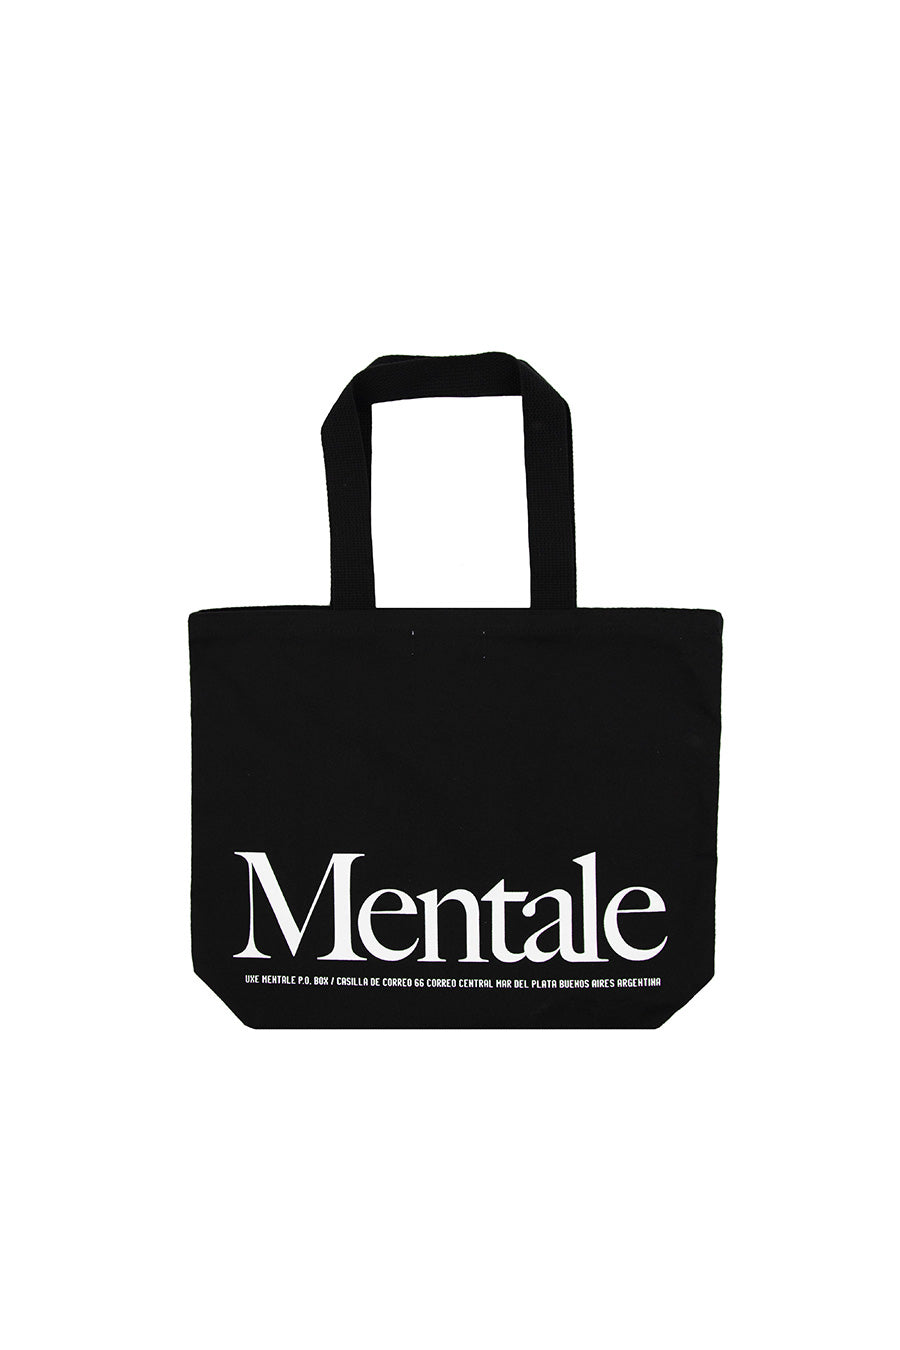 Uxe Mentale - Black Pen Pals Tote Bag | 1032 SPACE